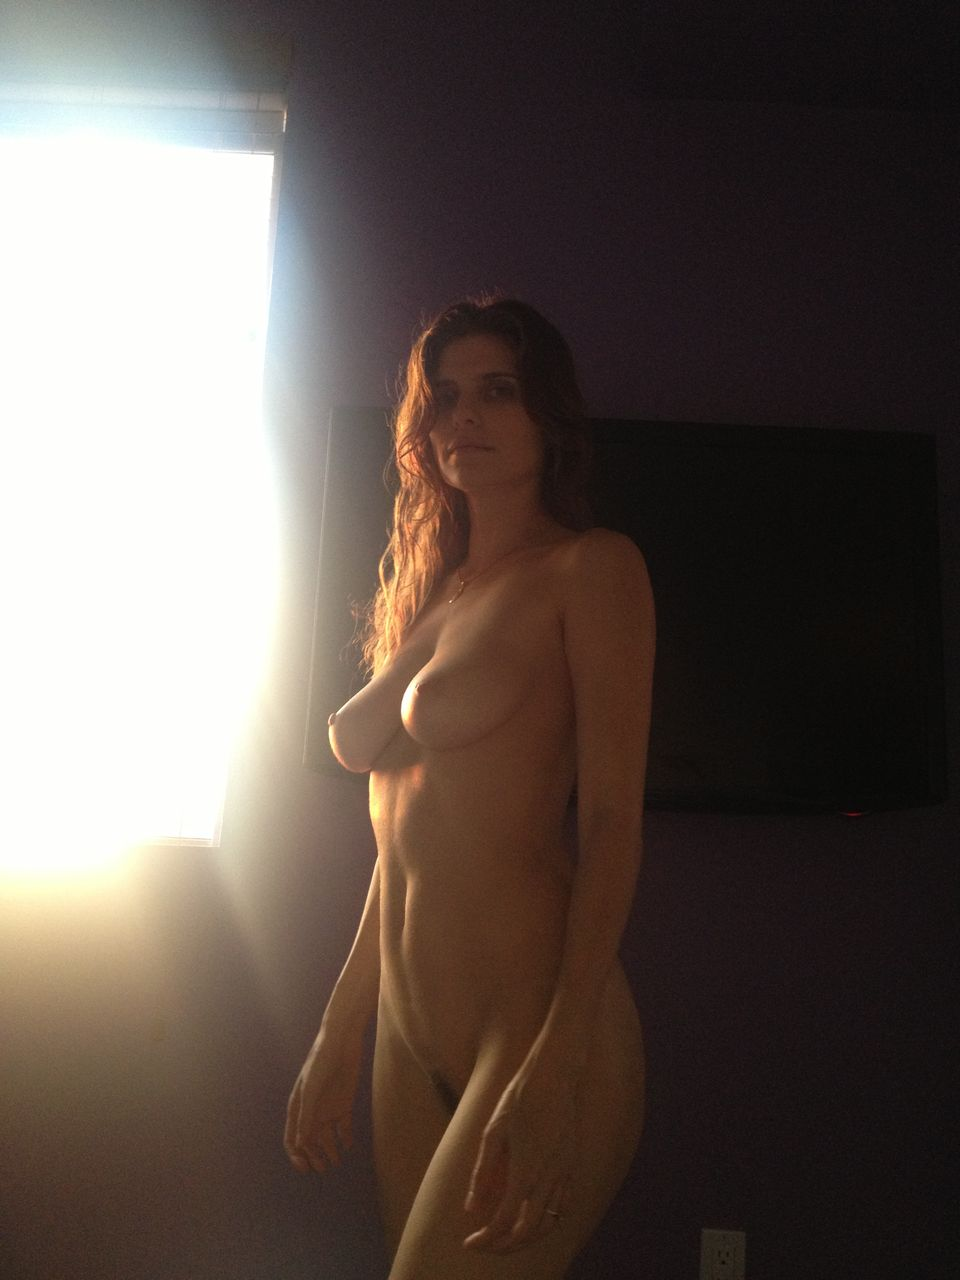 actress lake bell totally naked chest and crotch visible